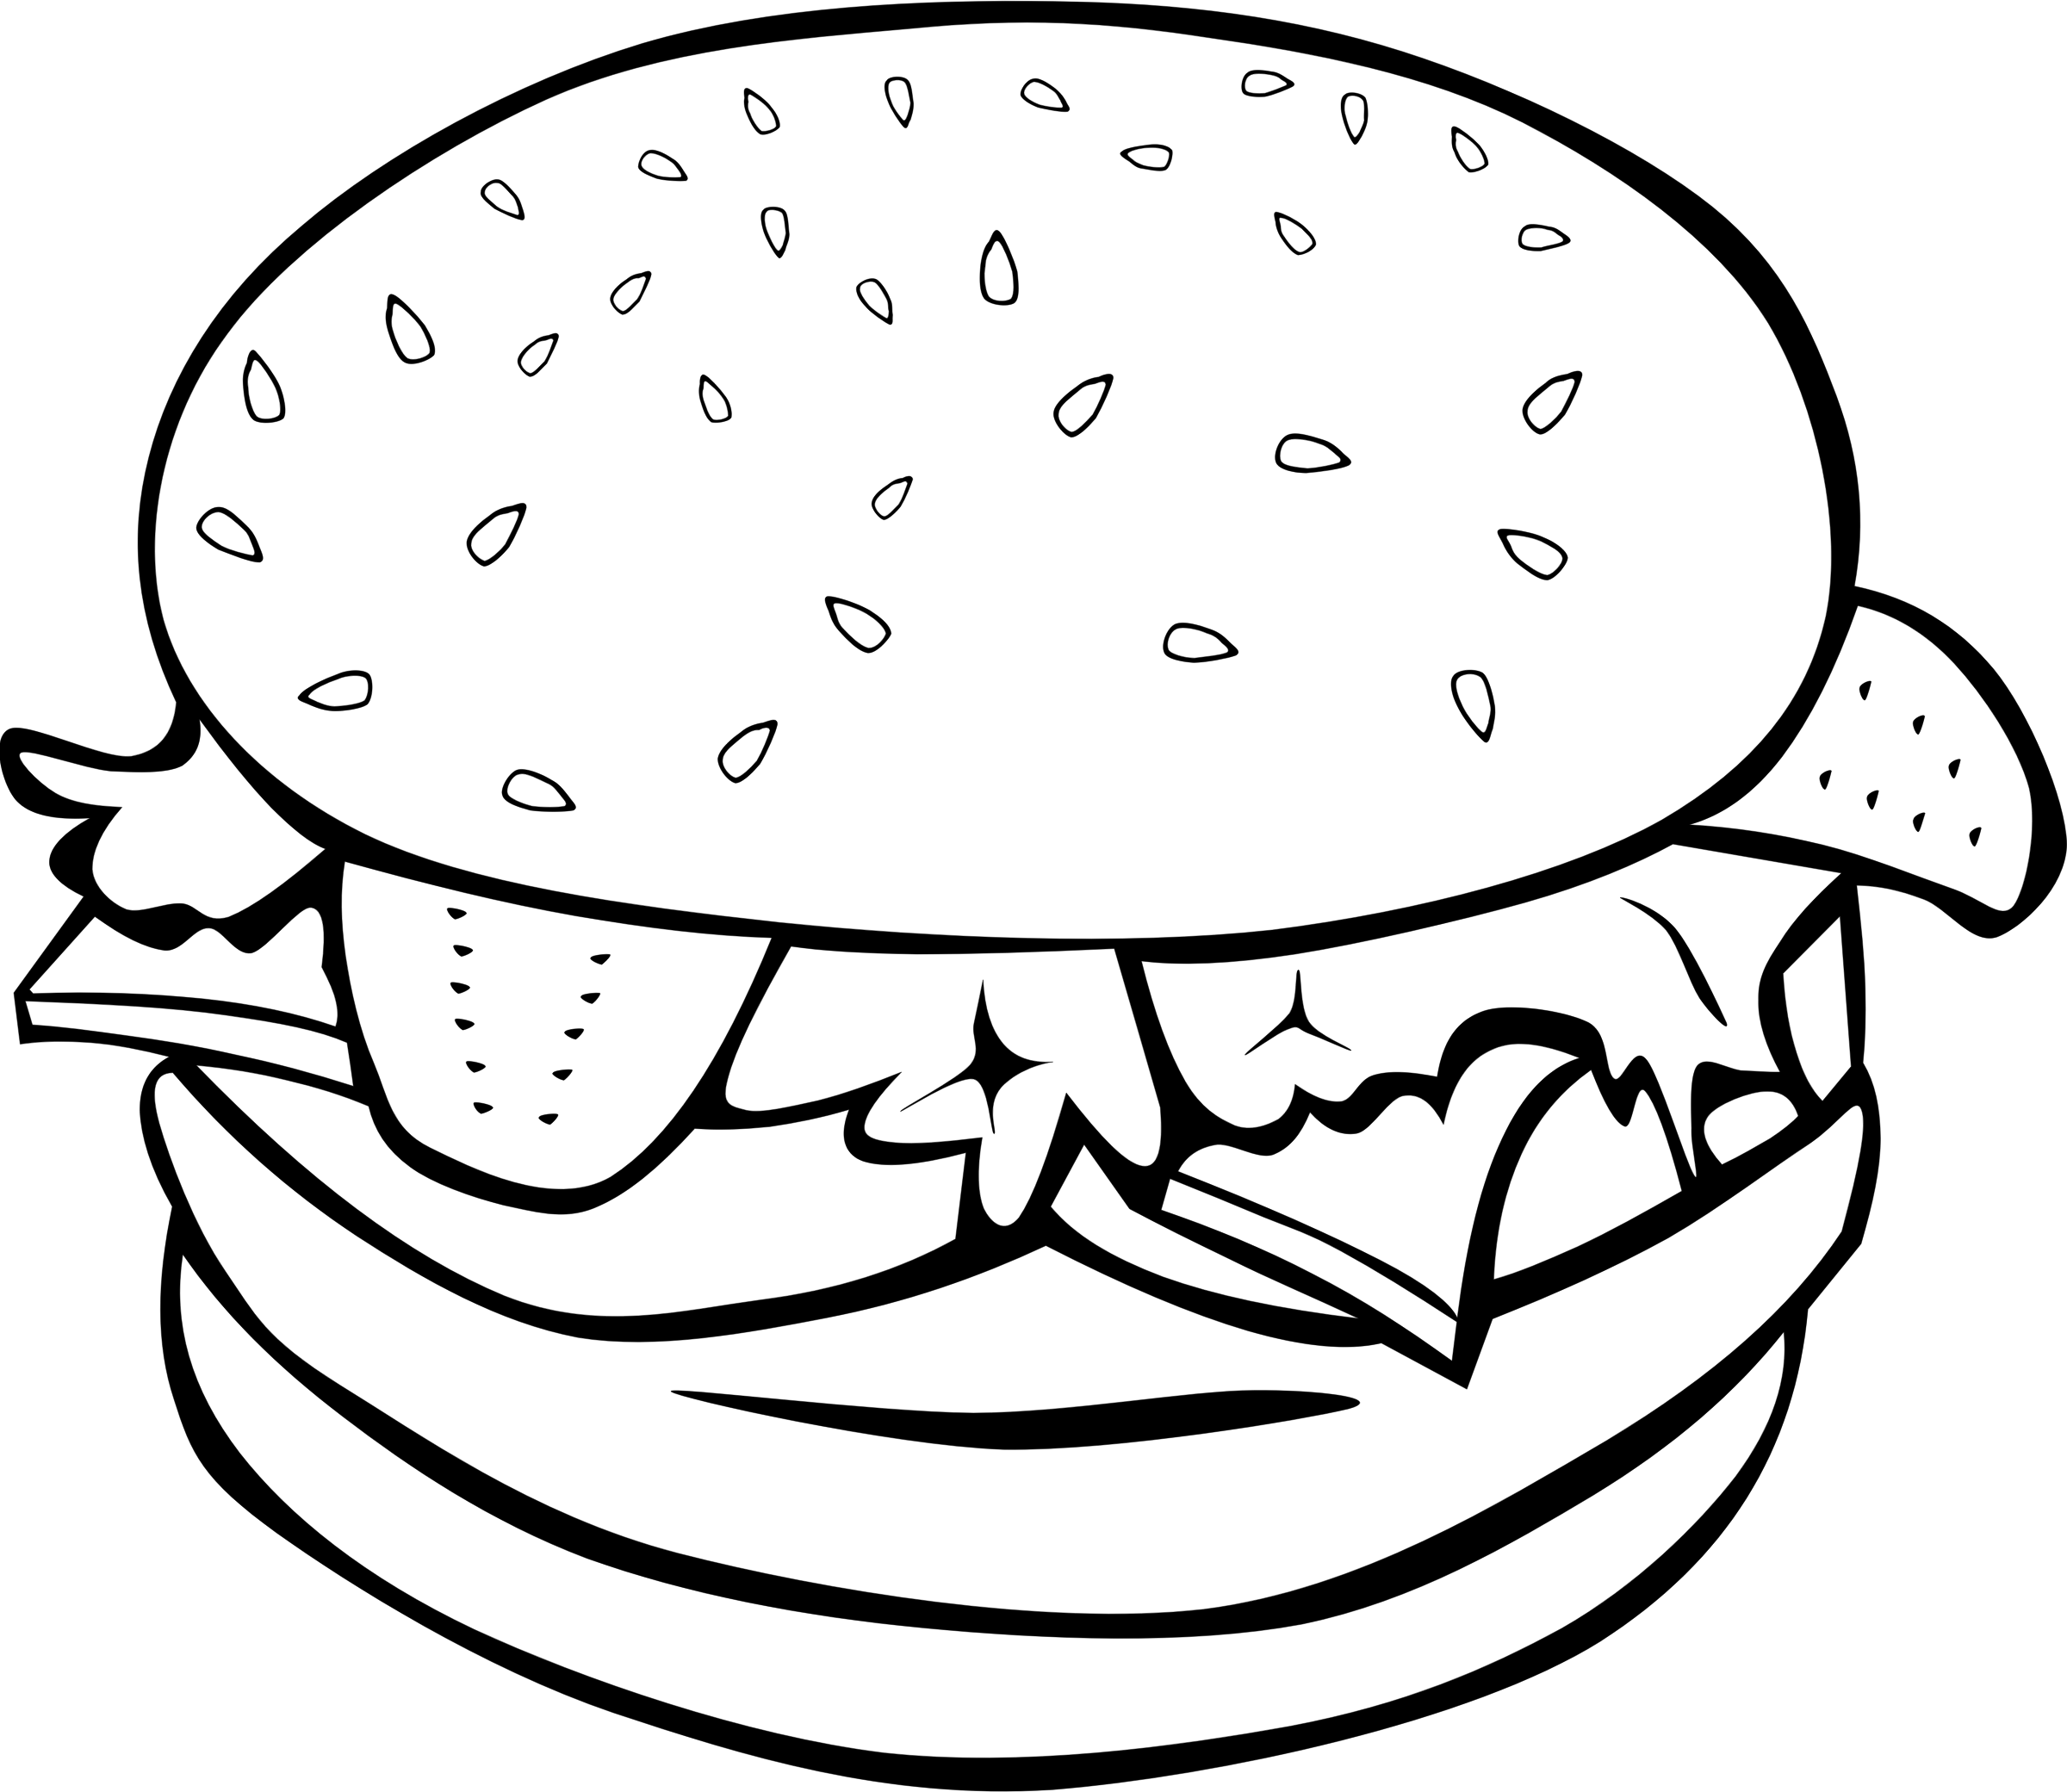 E clipart colouring. Fast food lunch dinner